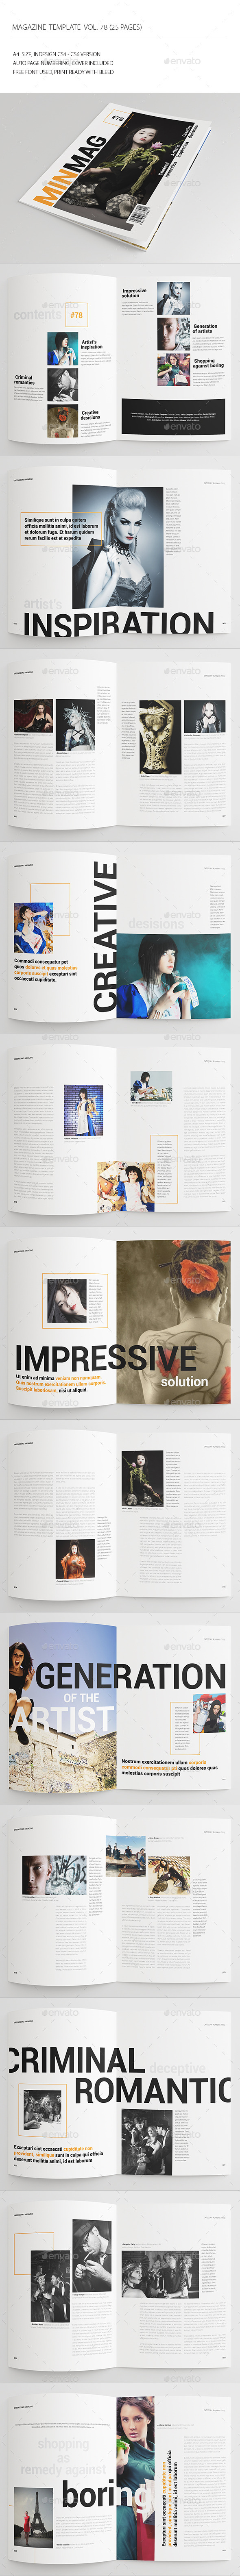 25 Pages Universal Magazine Vol78 - Magazines Print Templates